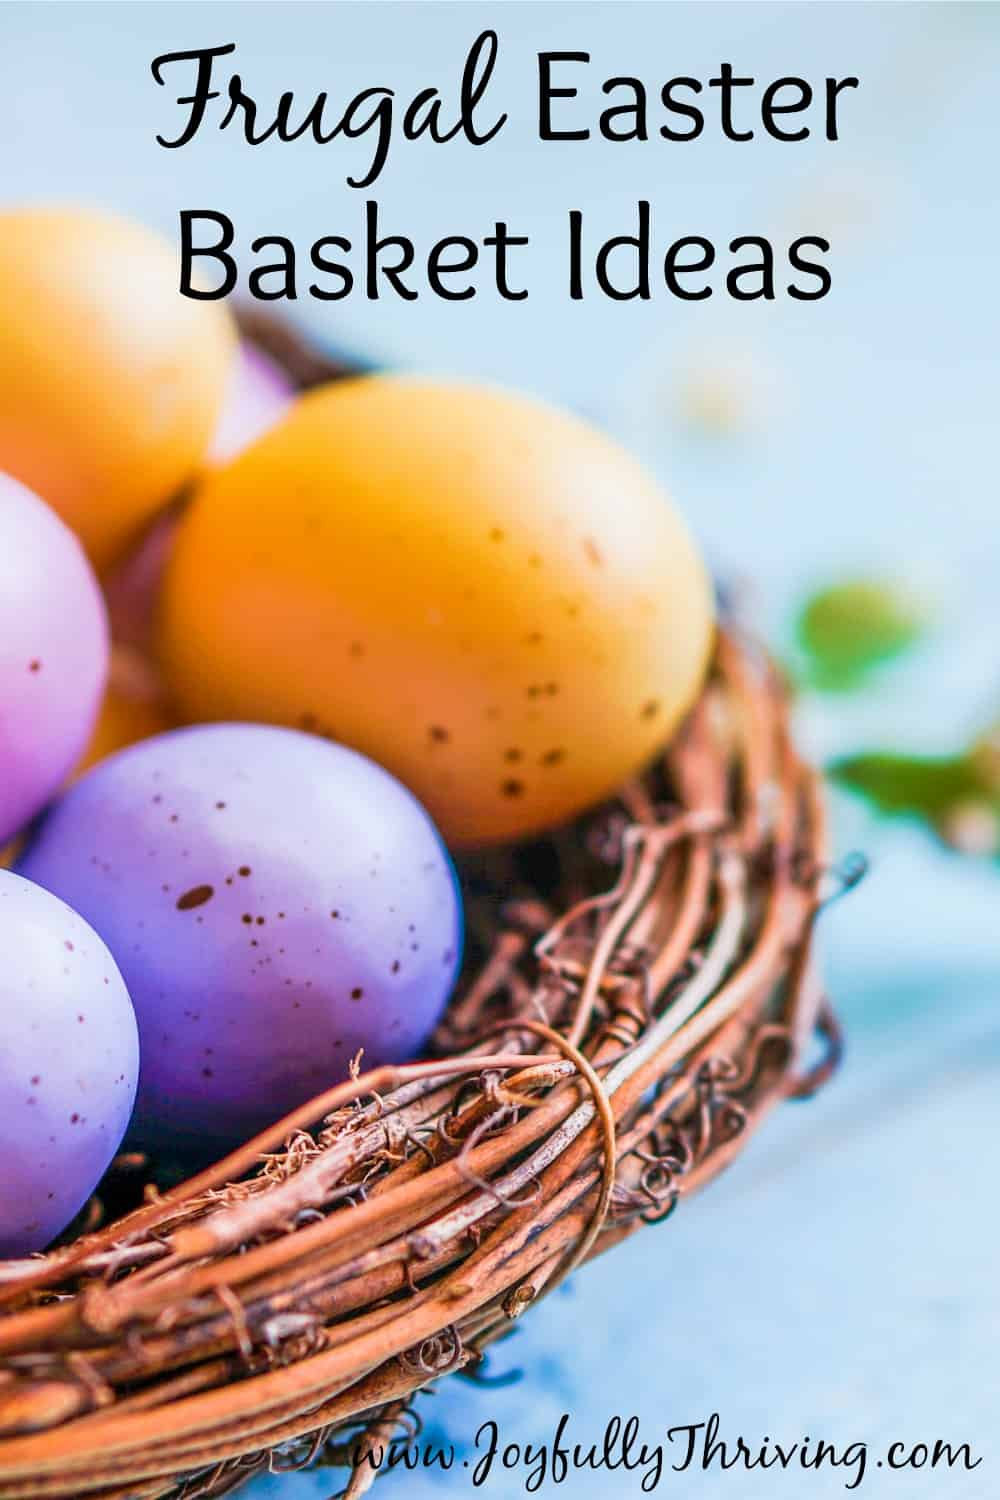 Frugal easter basket ideas love this list its simple but has lots of great ideas that the kids will enjoyg frugal easter basket ideas love this list its simple but has lots of great negle